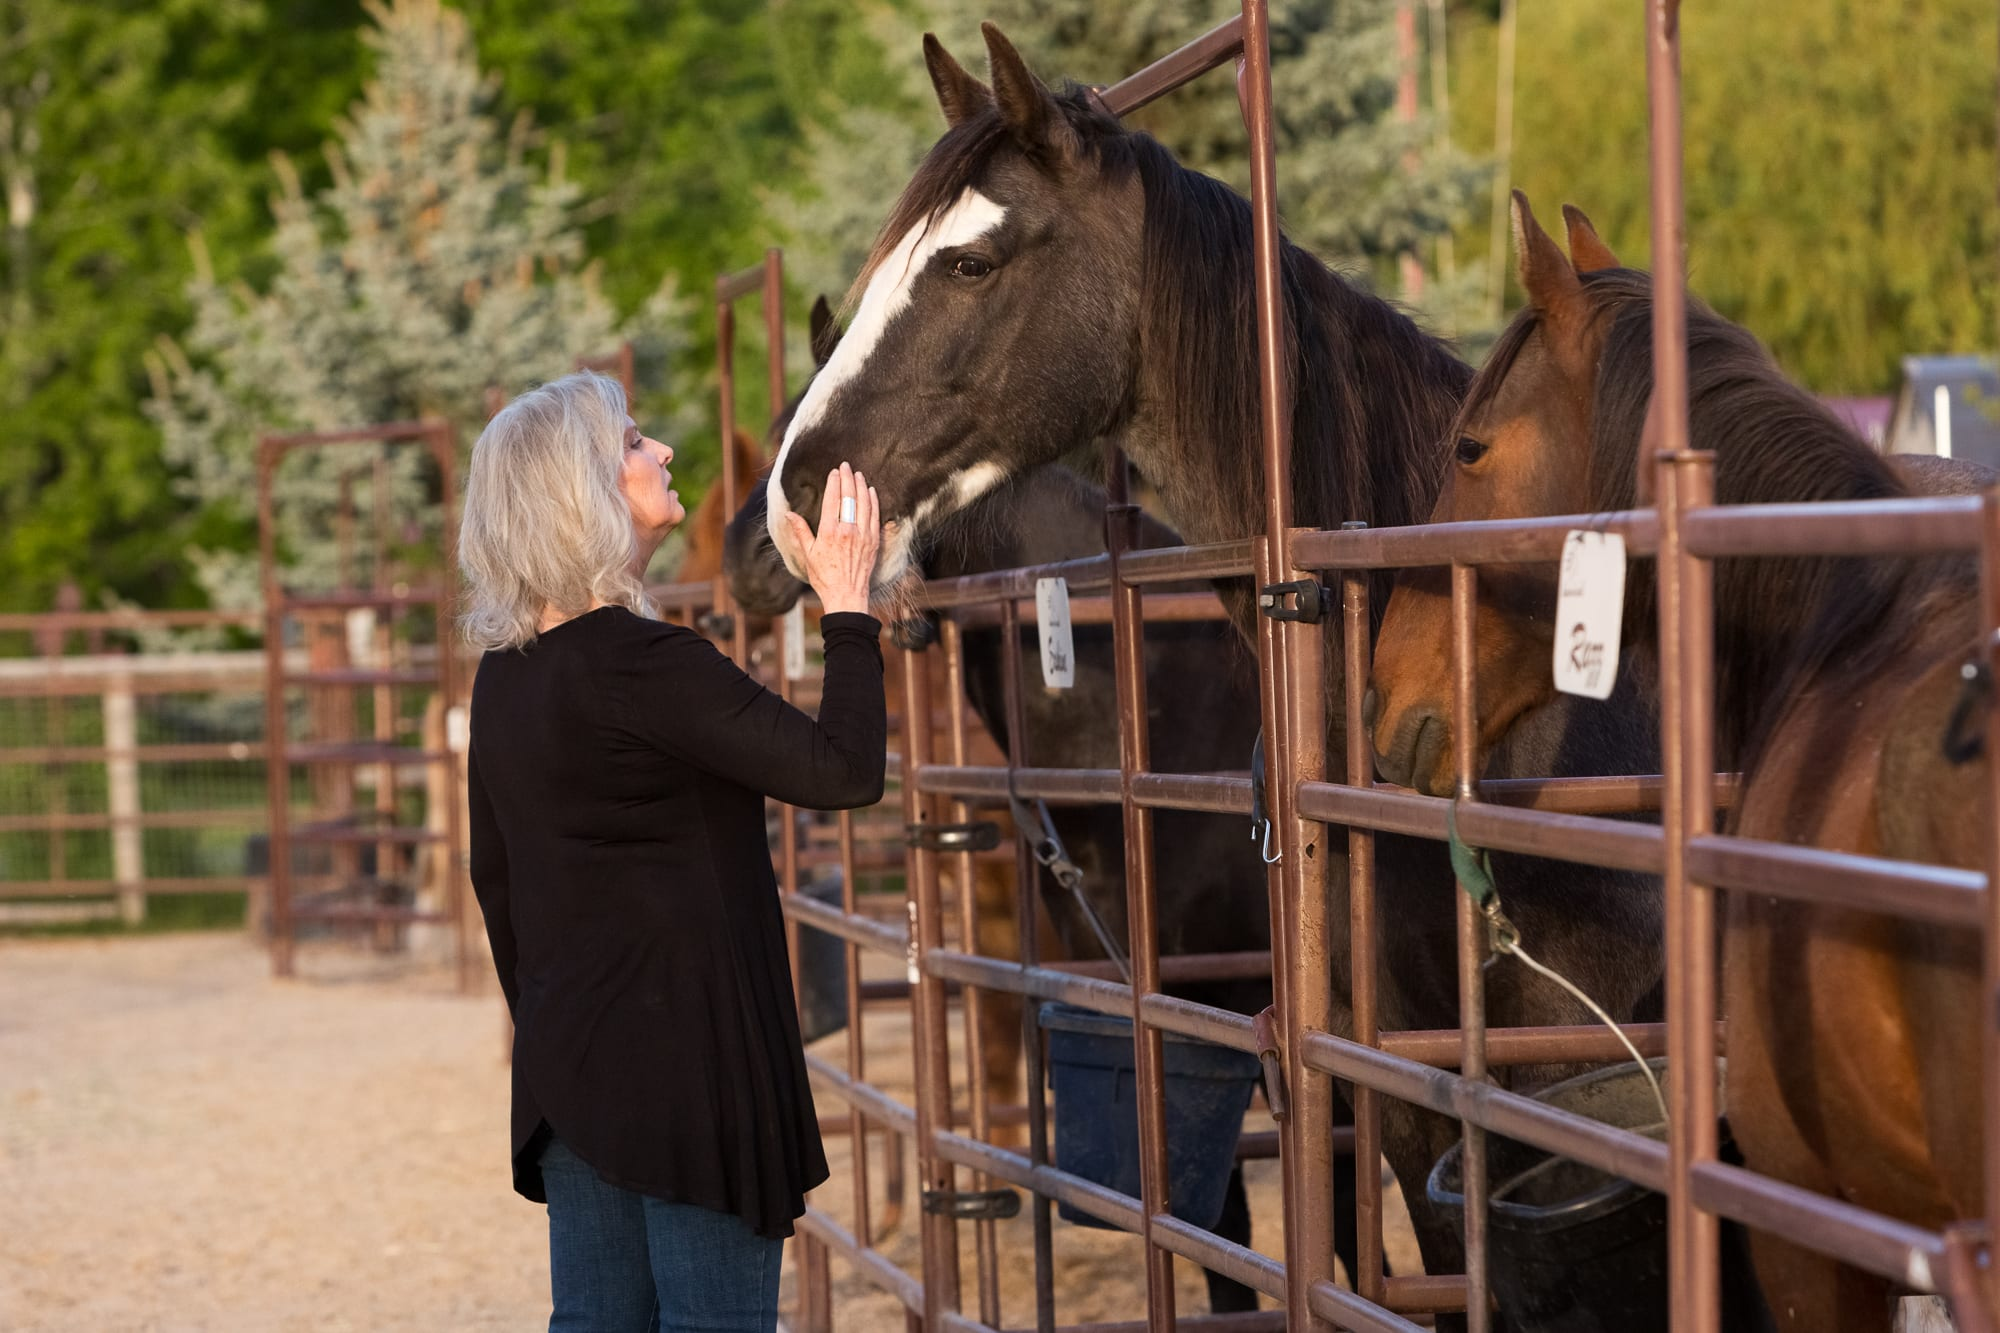 Dunrovin Ranch Destination Missoula Harlequin Contest By Pam Voth Photography A9A8155